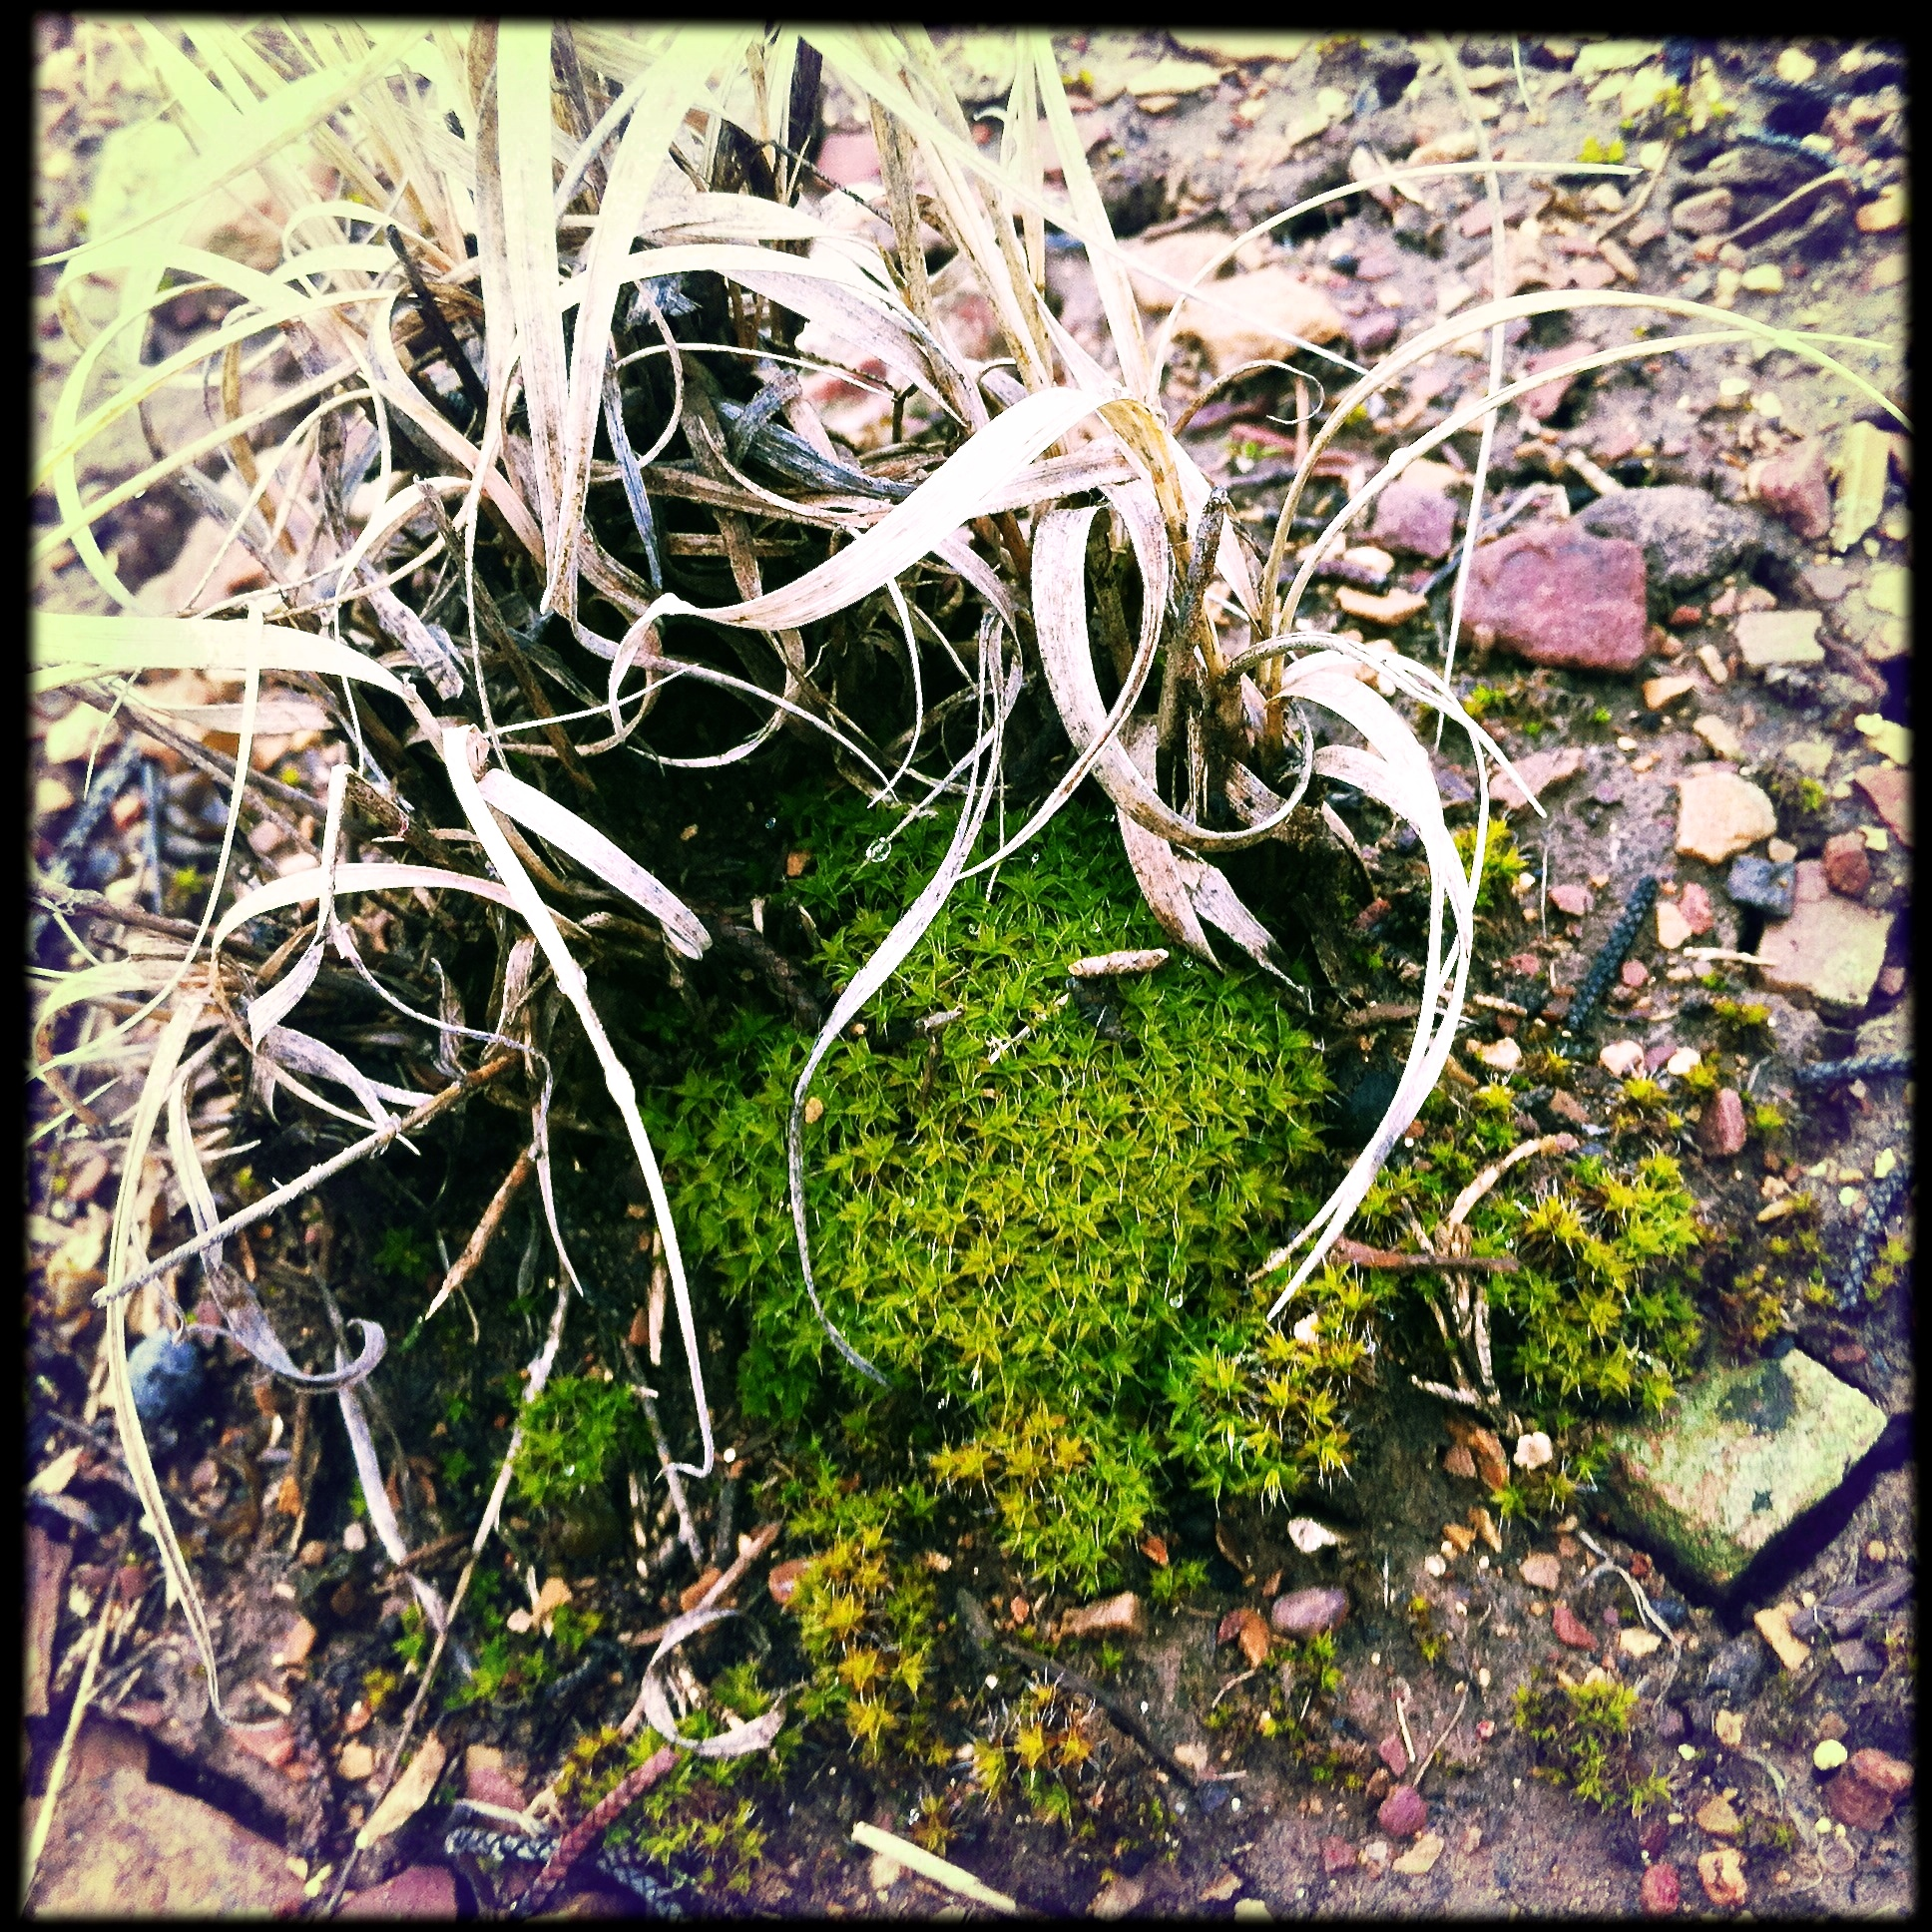 A small patch of moss at the base of a little galleta grass.